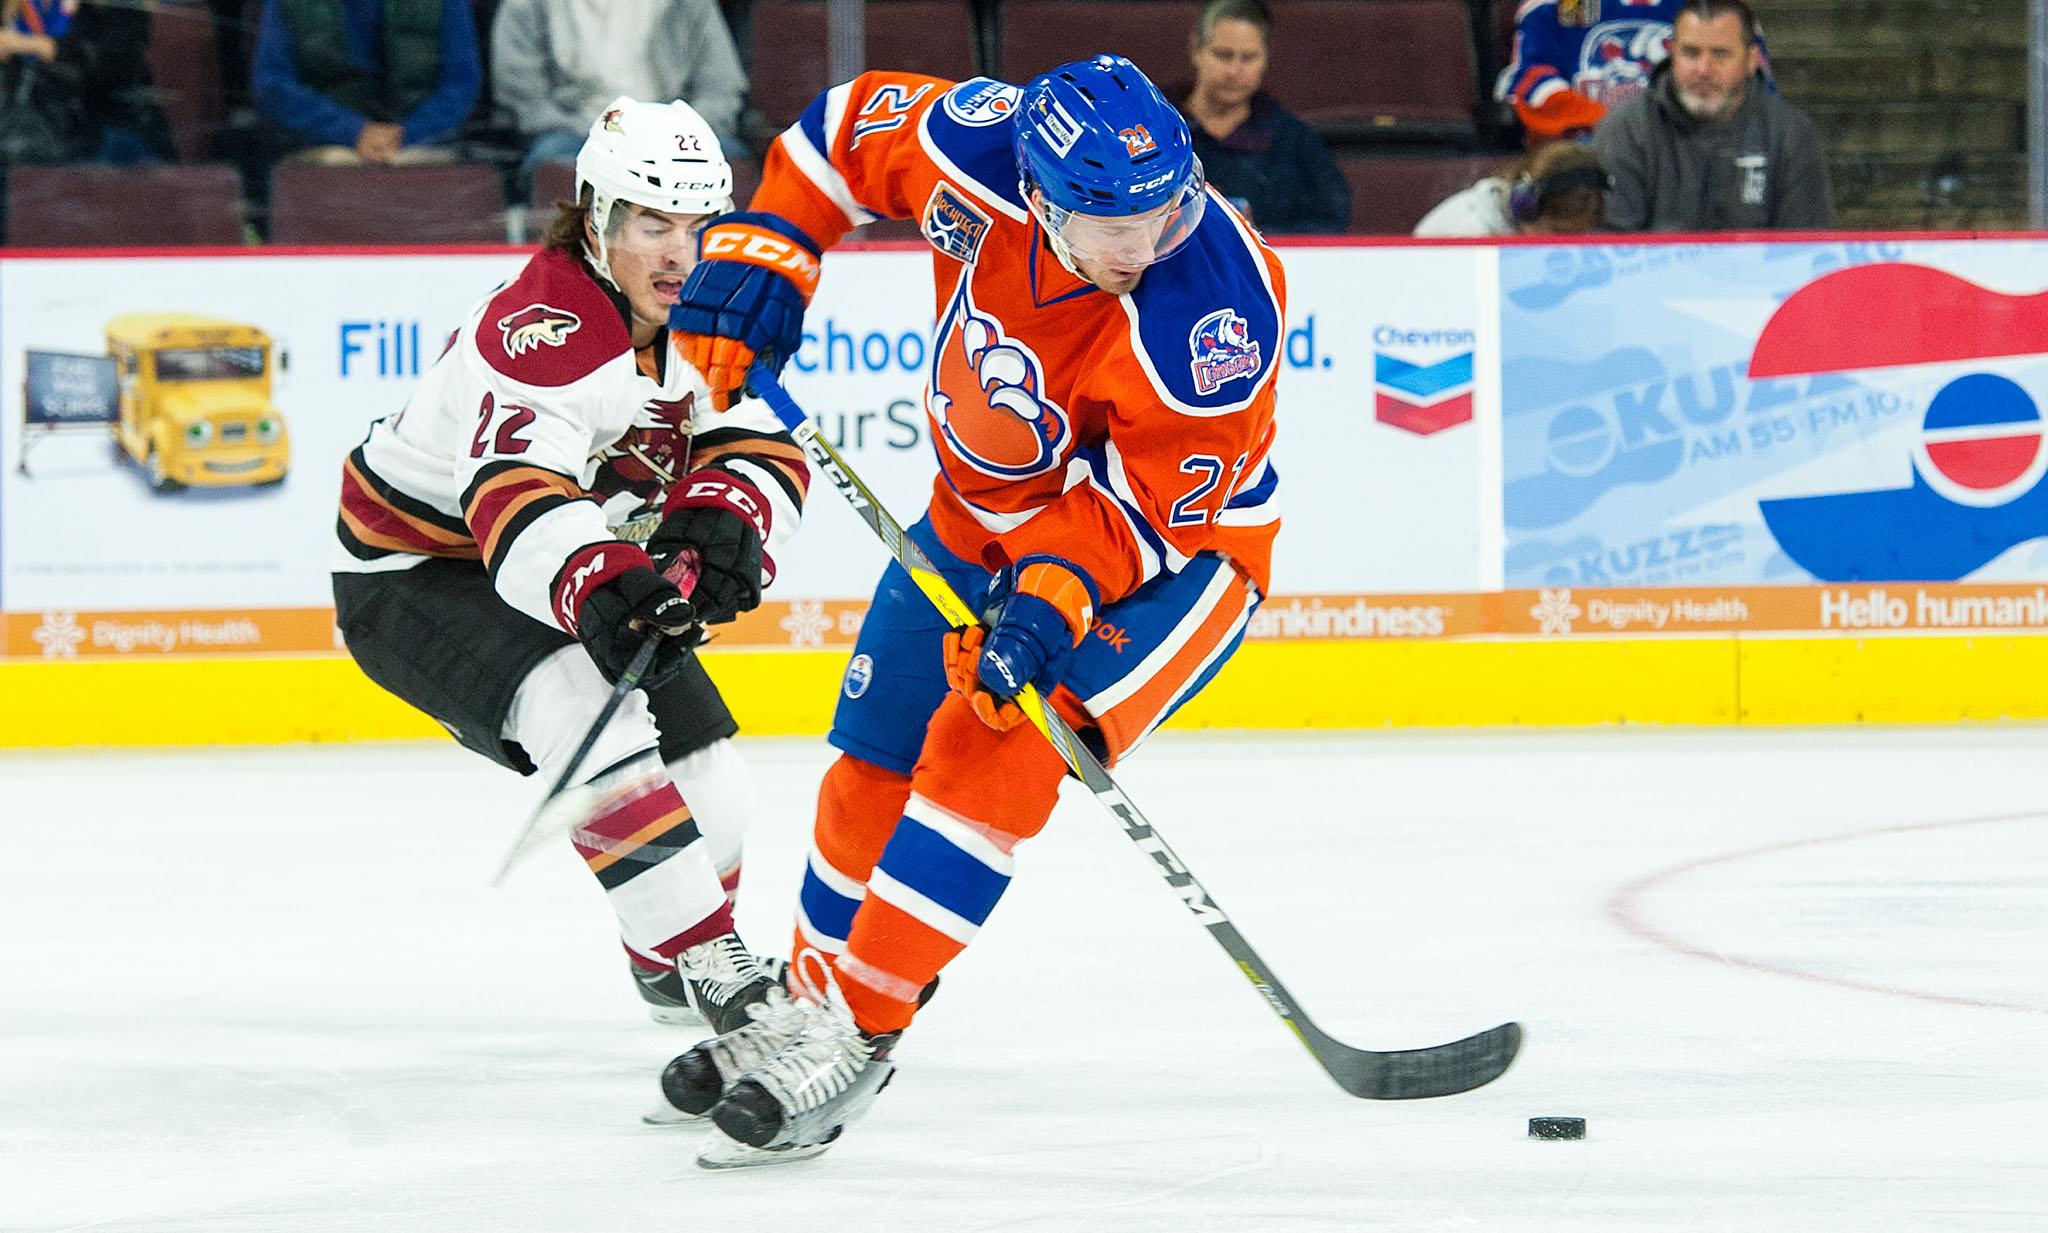 The Official Website of the Tucson Roadrunners: NEWS & STATS